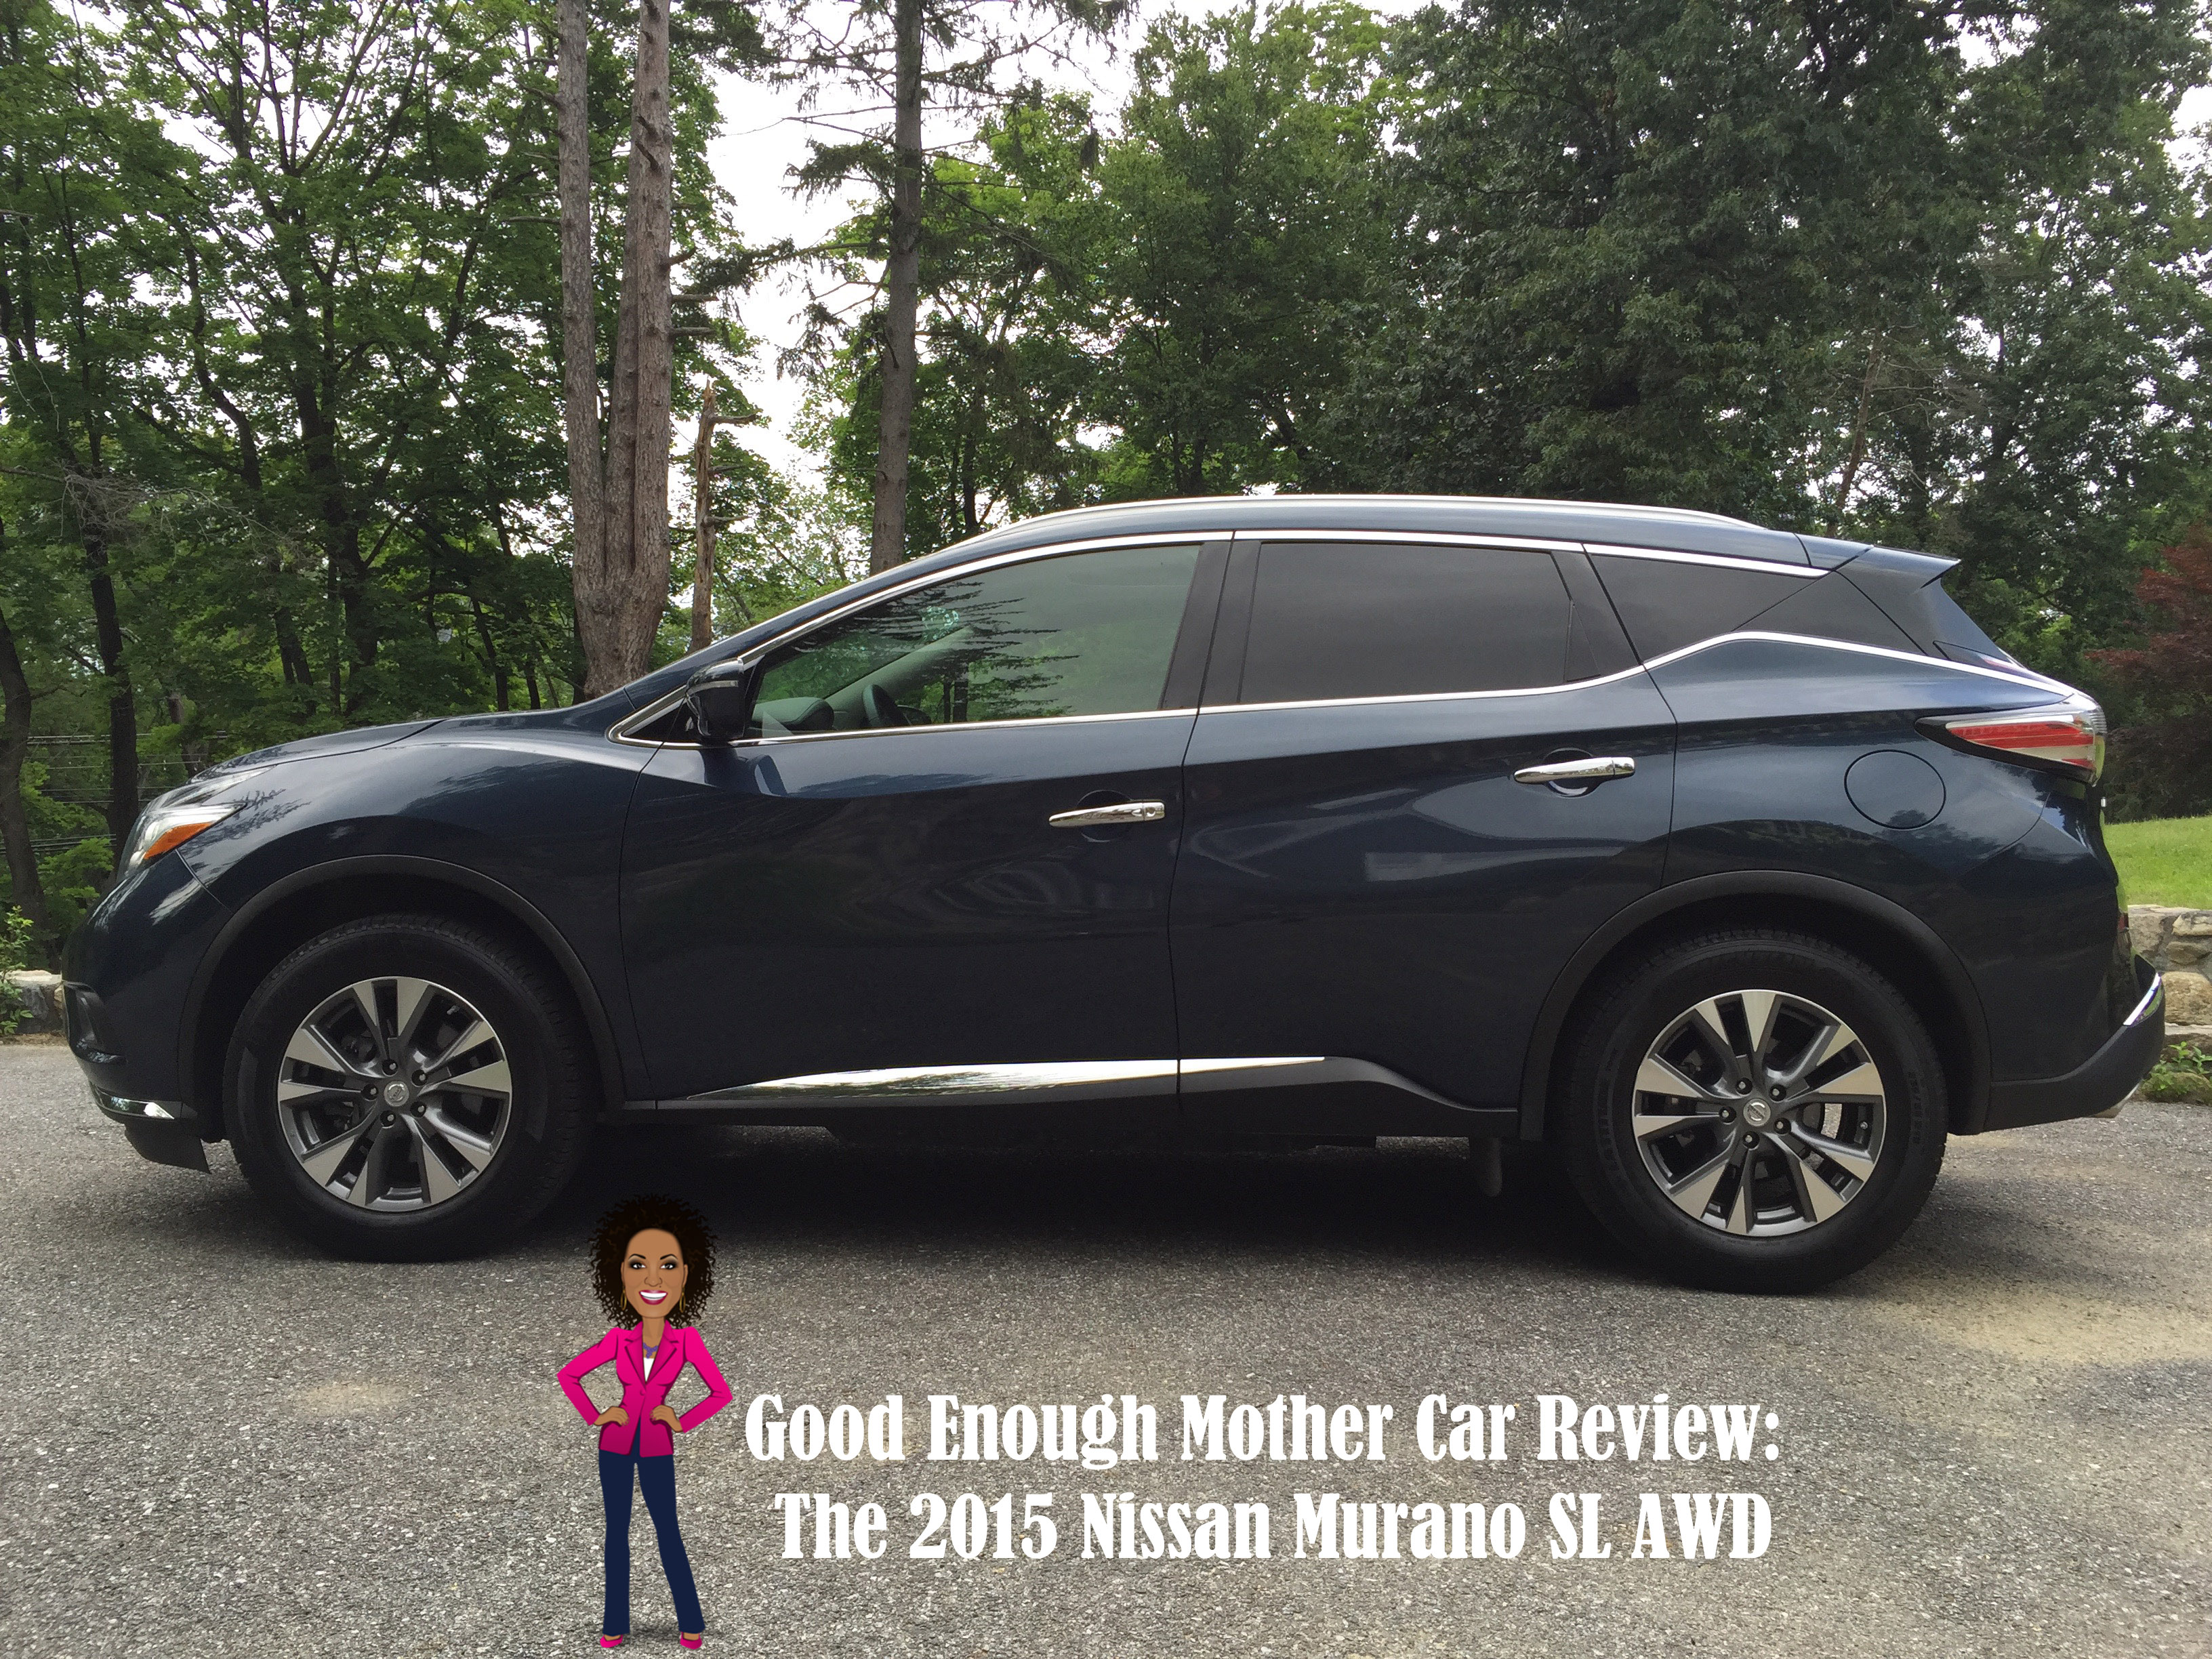 good enough mother car review the 2015 nissan murano sl awd video. Black Bedroom Furniture Sets. Home Design Ideas